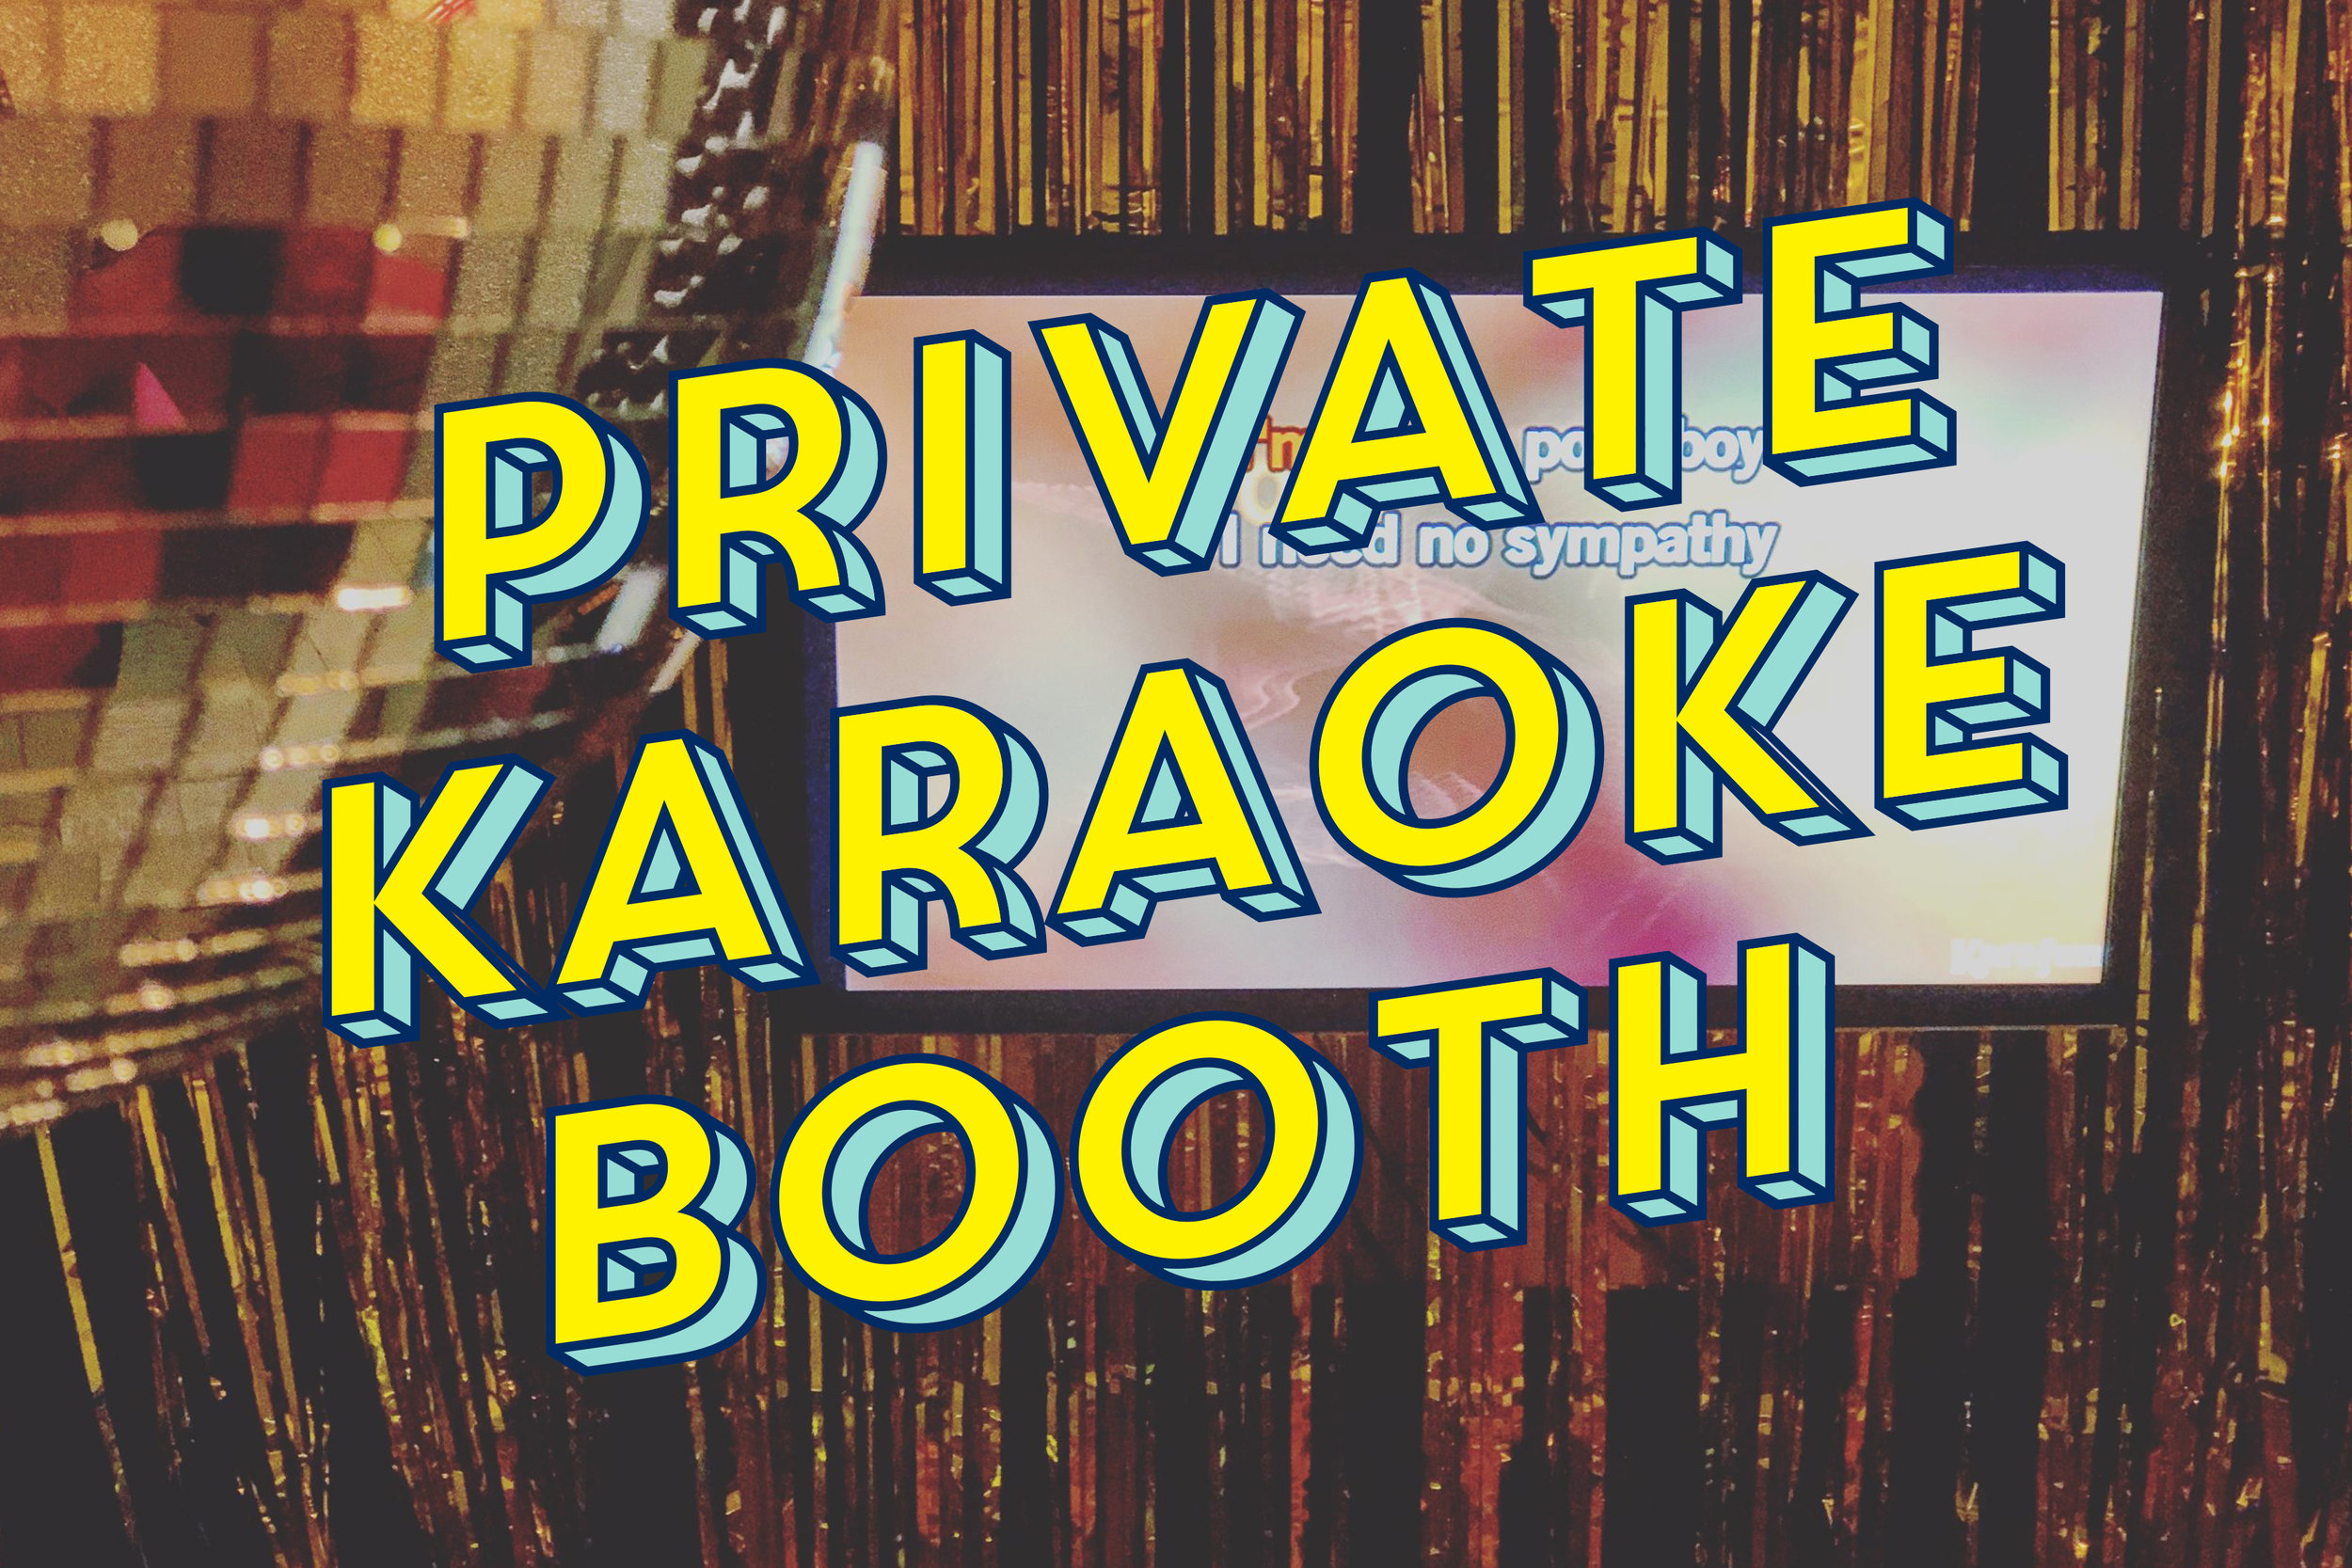 KIDS KARAOKE BOOTH / From £25ph  Perfect daytime entertainment, our Karaoke booth has all the latests chart hits and Disney classics.    Book Now